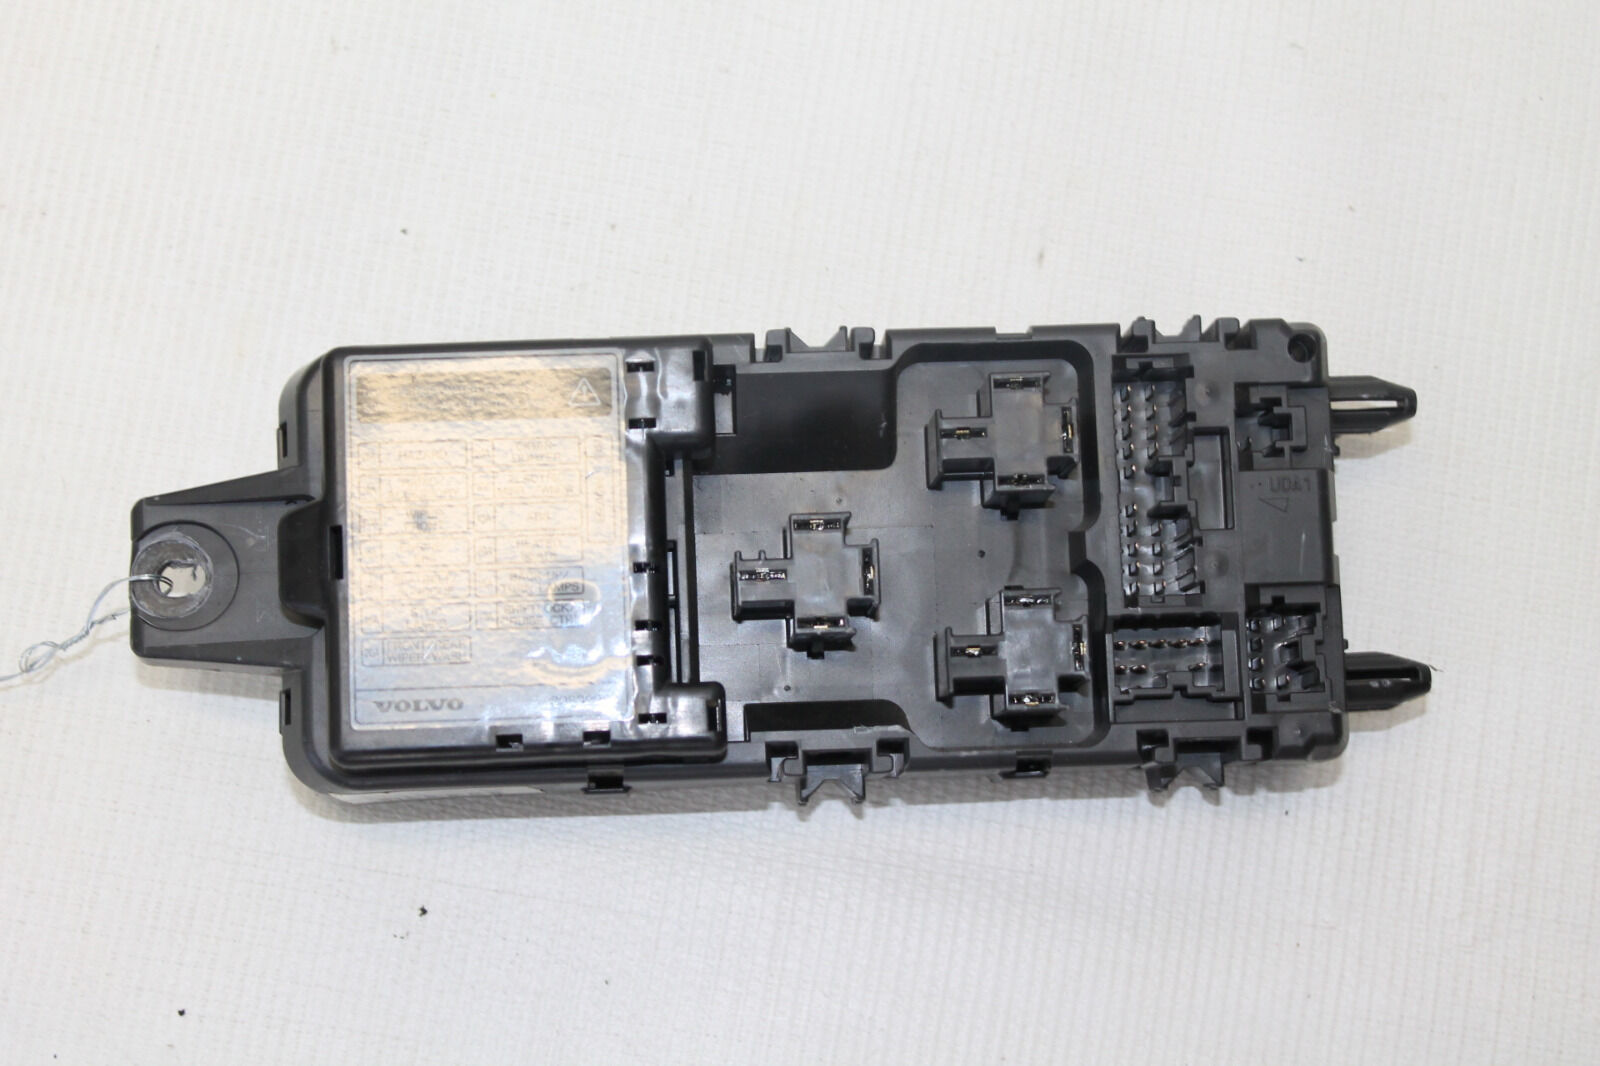 Volvo V40 Fuse Box Part 30807016 3283 Picclick Ca 1 Of 6only Available